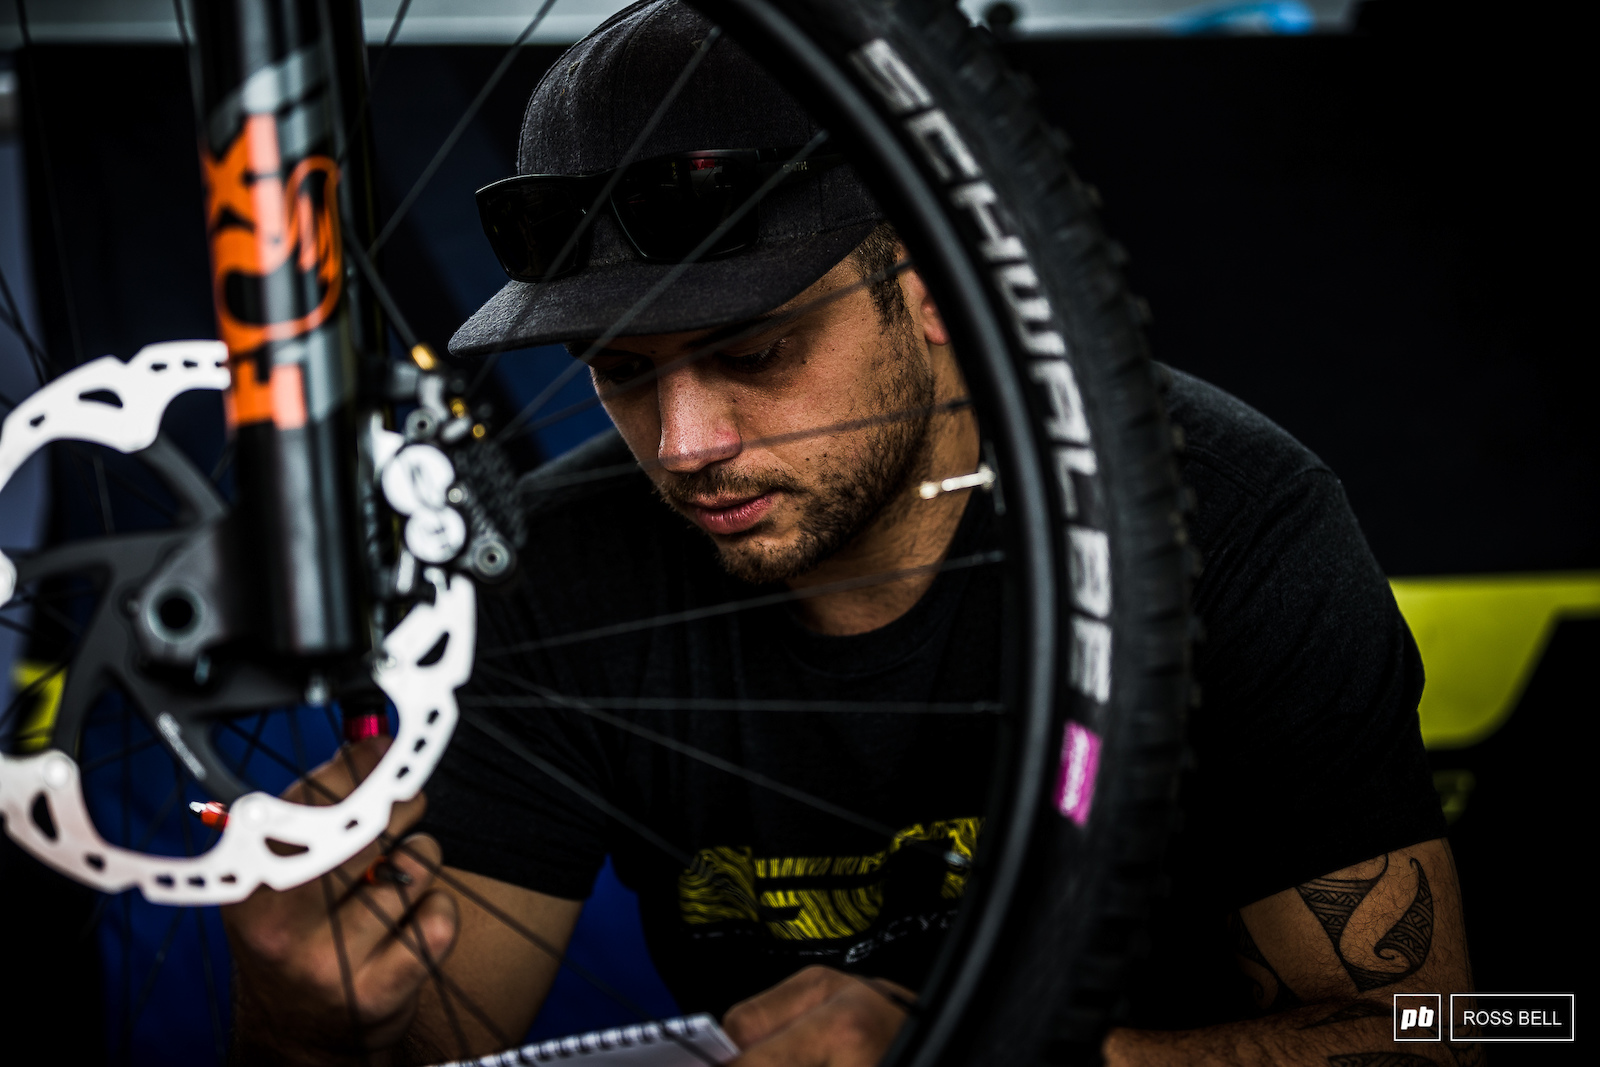 Matteo Nati counting clicks in the GT pits. Having been Jerome Clementz s side kick at Cannondale he s now made the switch to GT taking on both EWS and DH duties.